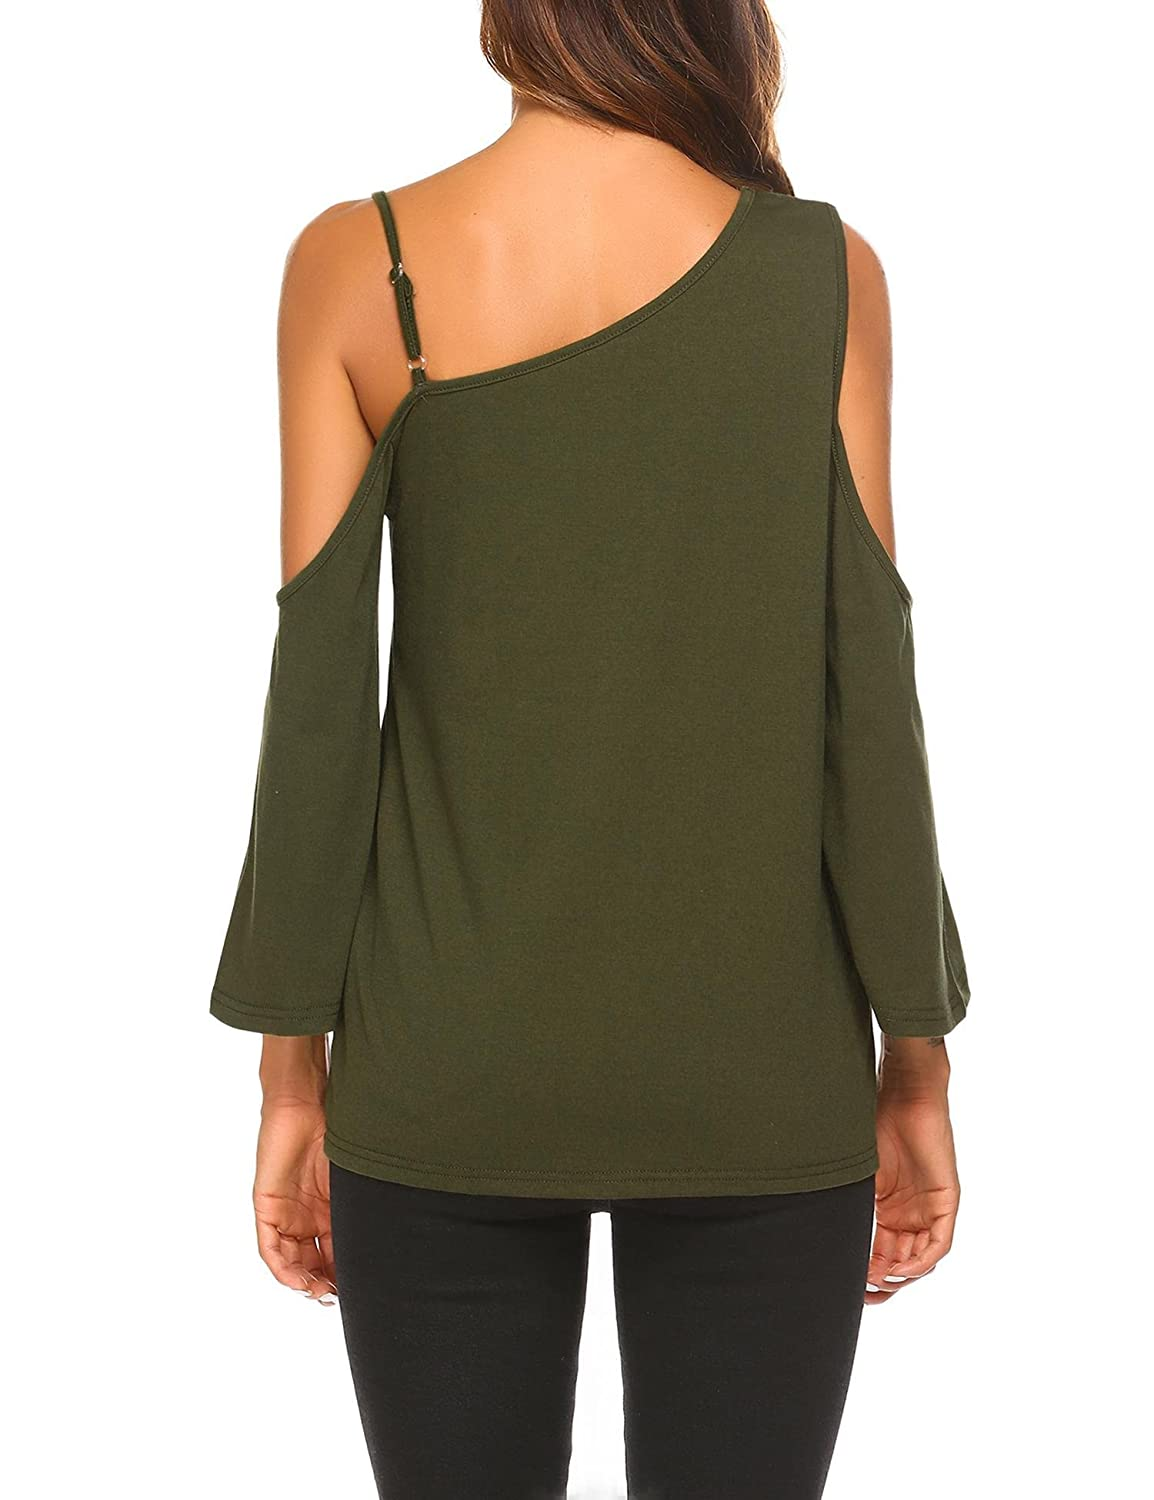 UNibelle Womens Off Shoulder Top Ruffle Sleeve Spaghetti Strap Blouse Tops Shirts